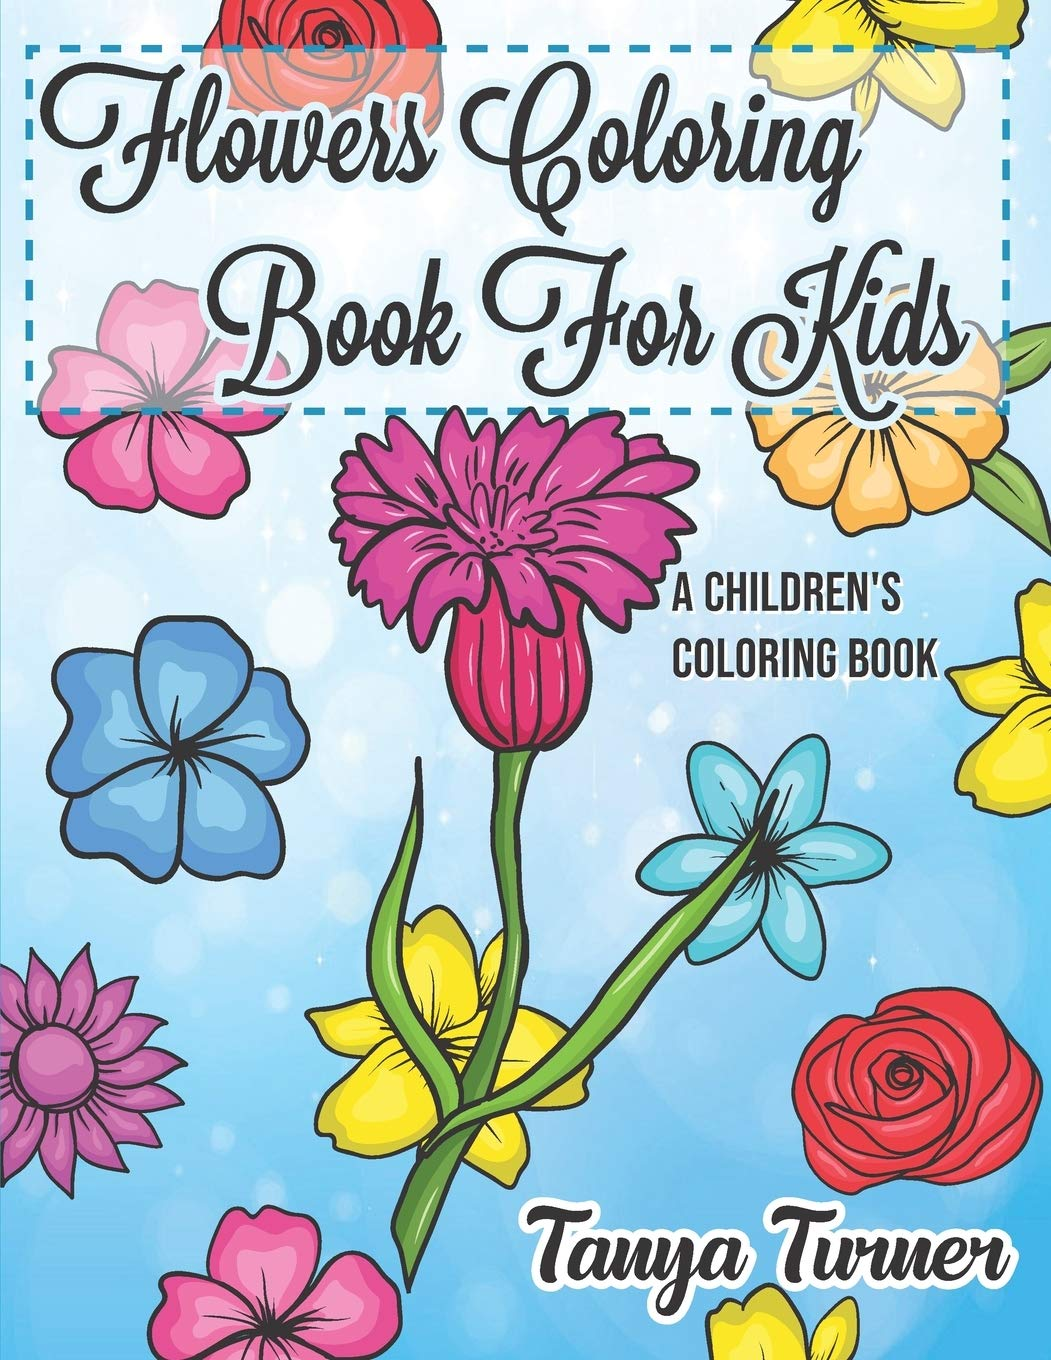 Flowers Coloring Book For Kids A Children S Coloring Book Turner Tanya 9781548597085 Amazon Com Books